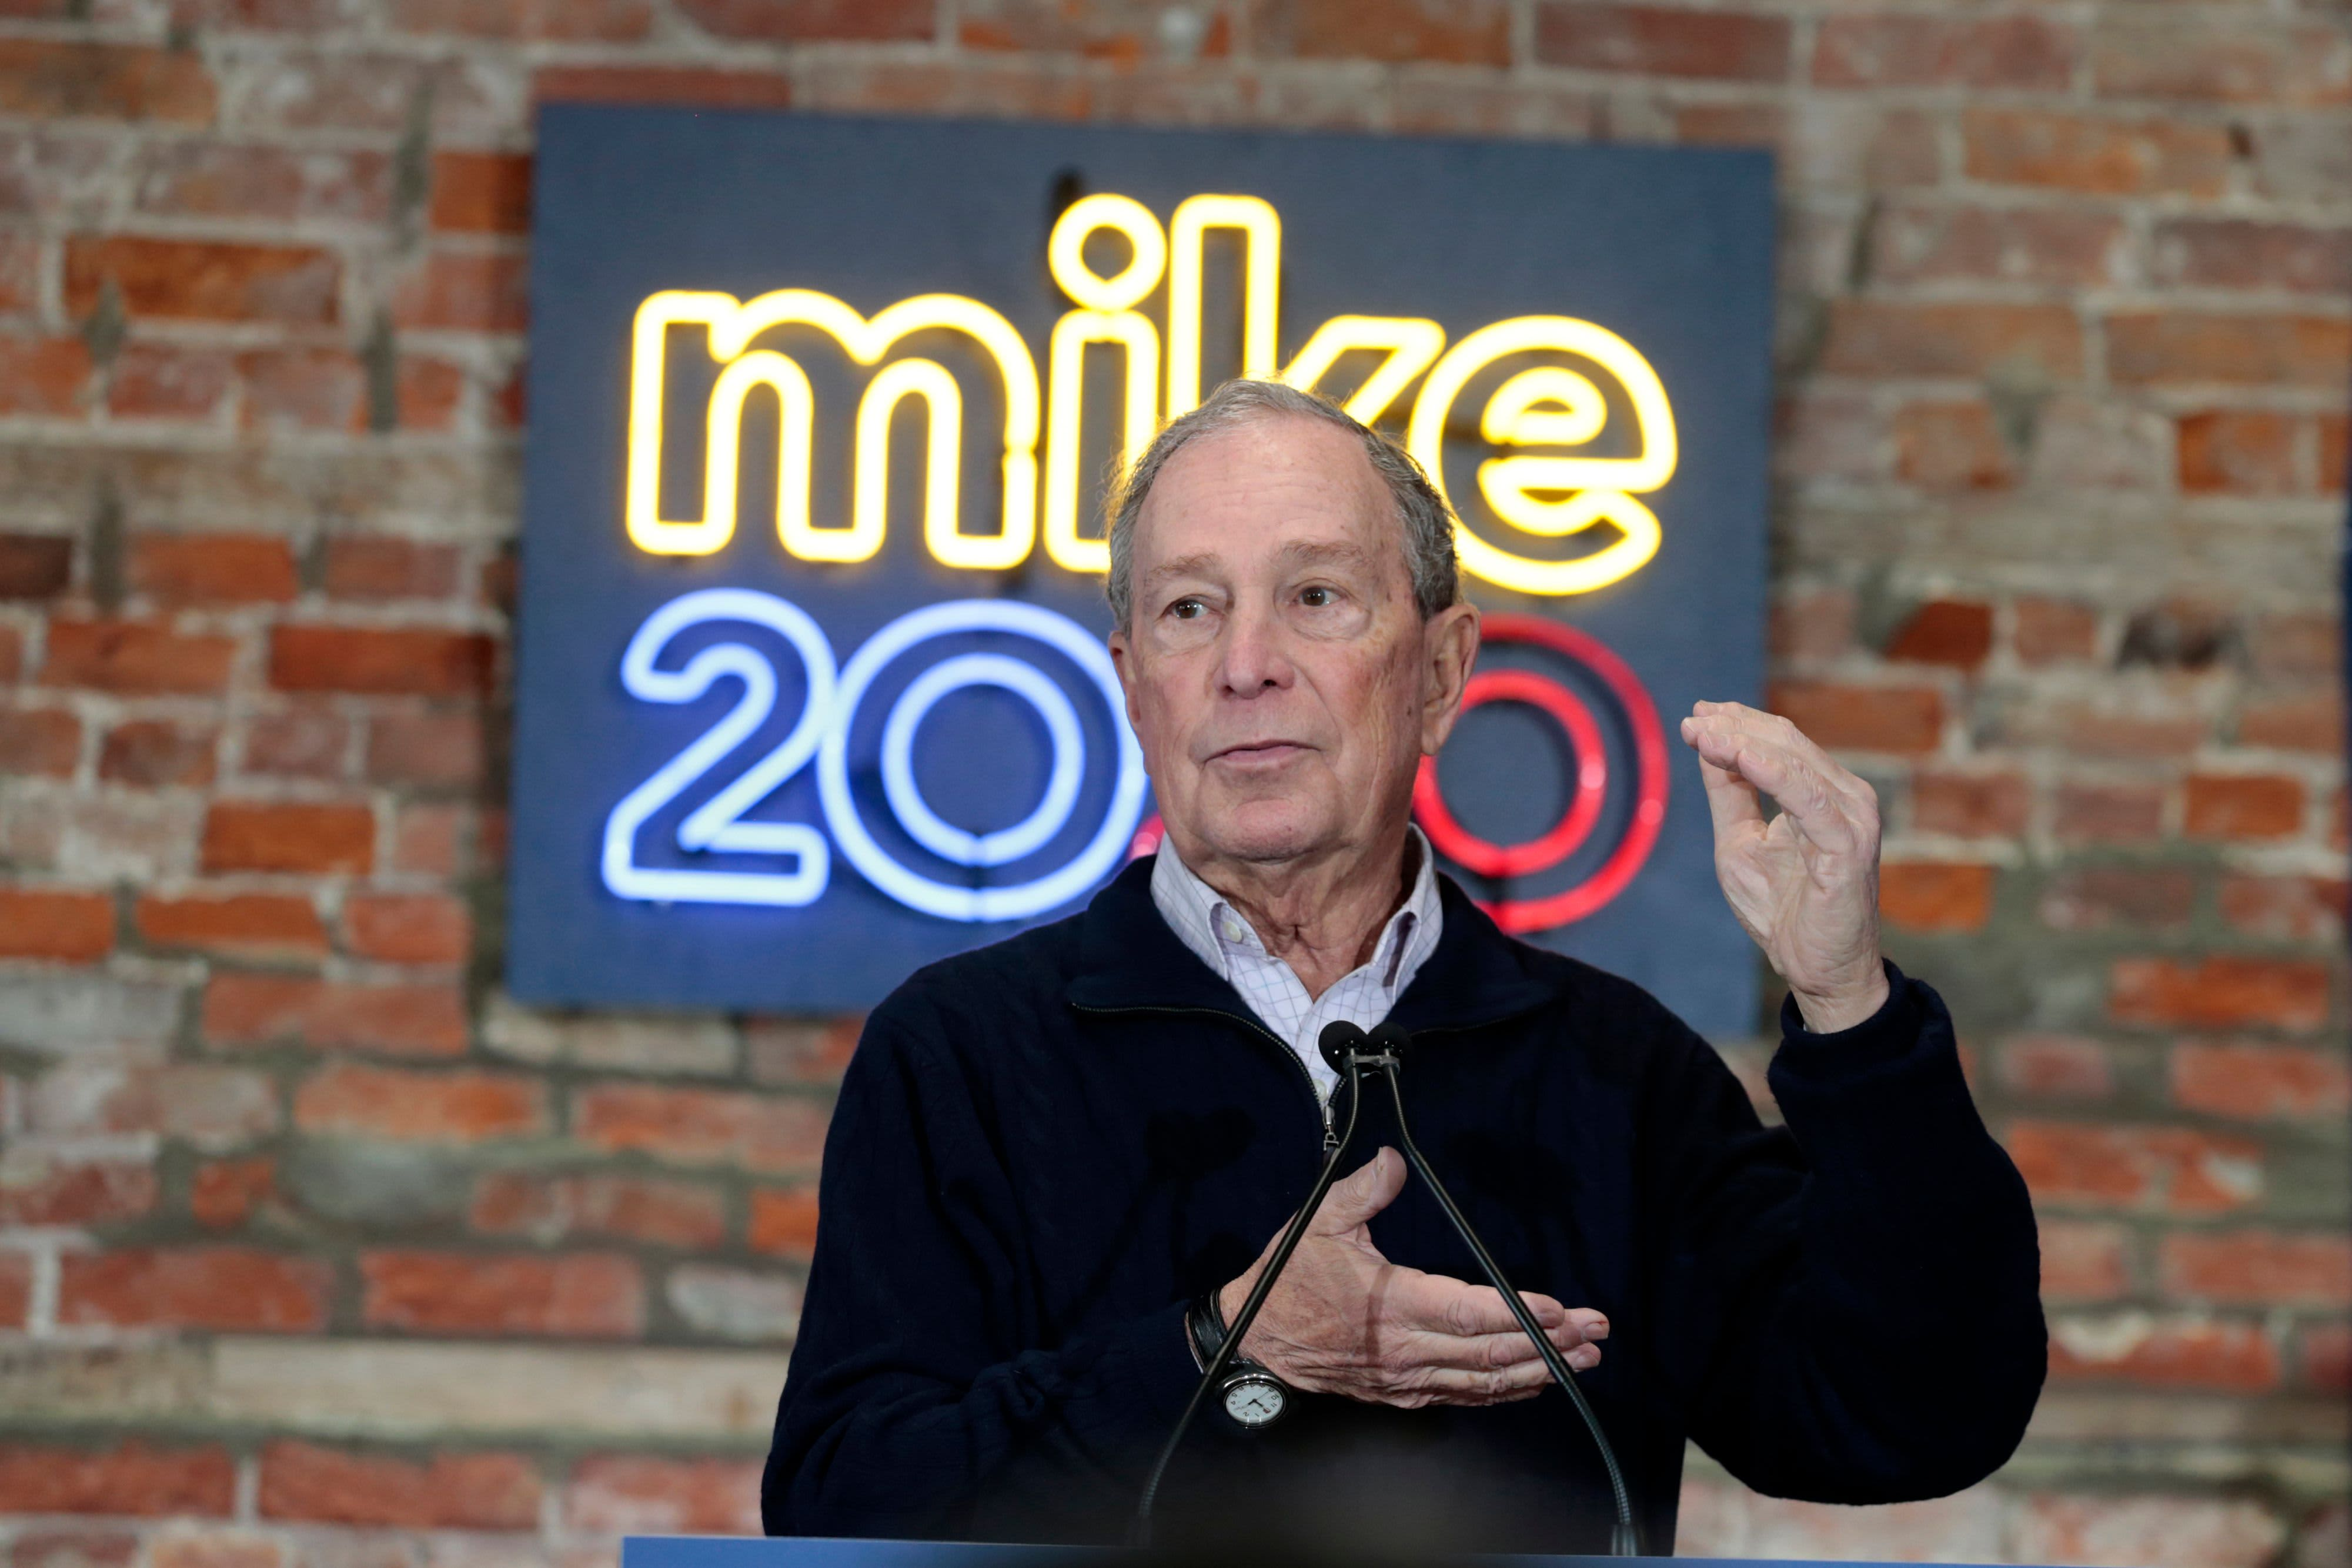 Bloomberg to fund sizable campaign effort through November even if he loses Democratic nomination